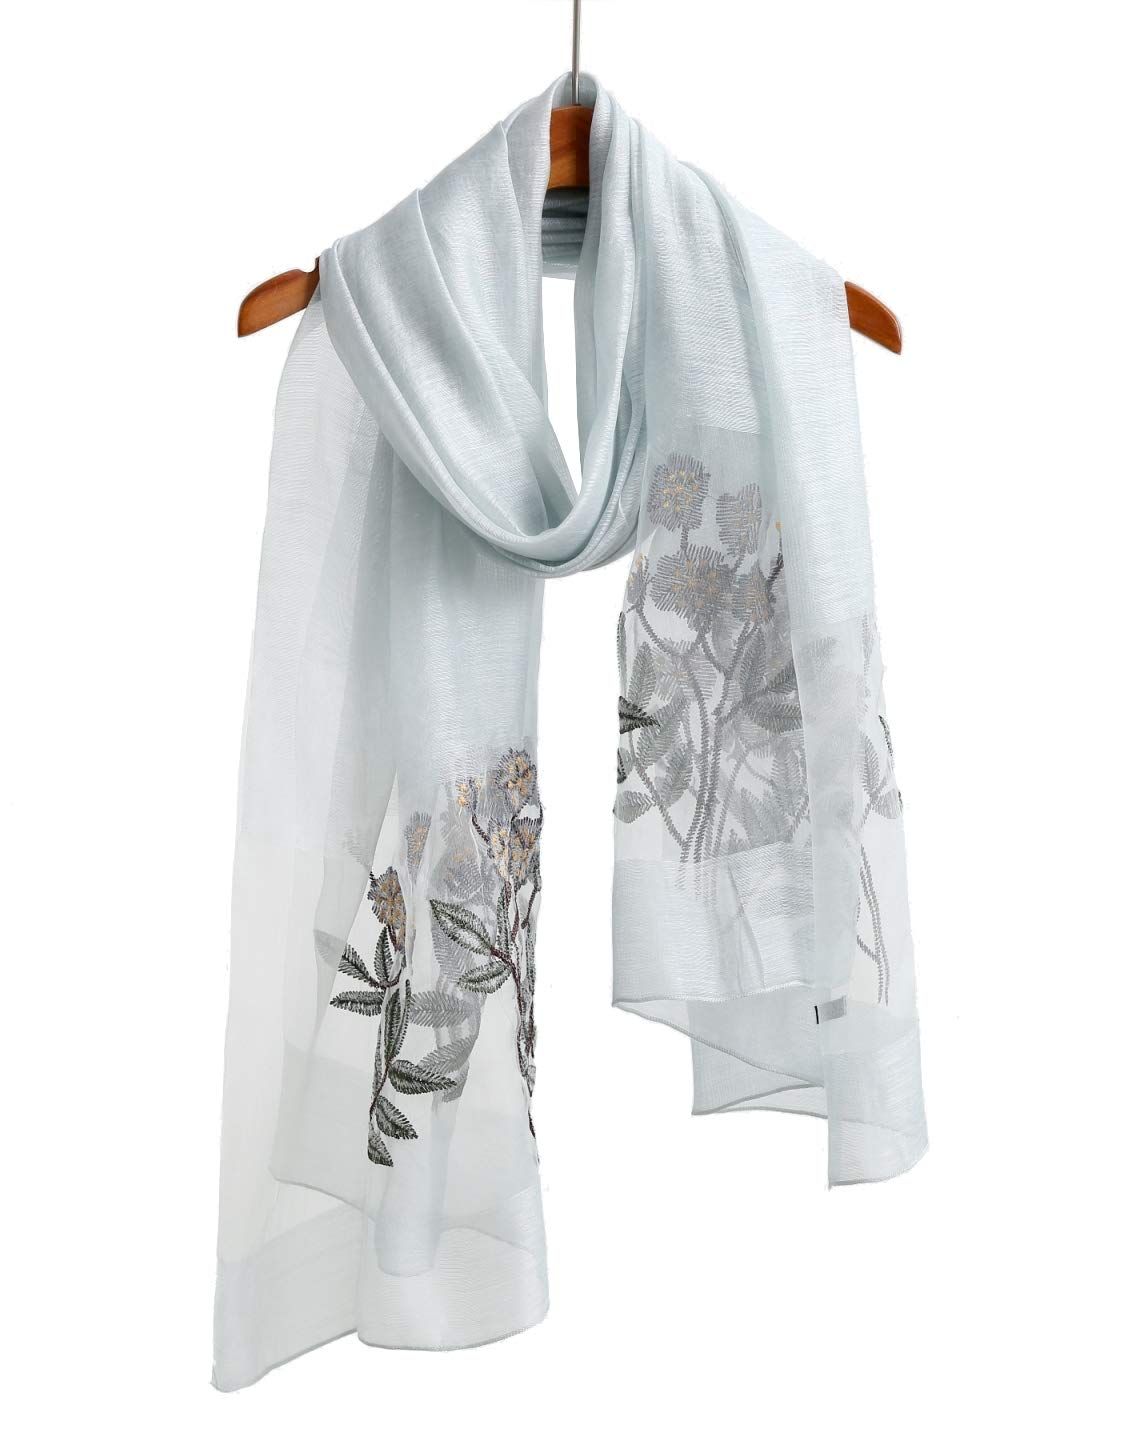 Light bluee Floral Winter Blanket Scarfs For Men And Women, Cashmere Like Pashmina Shawls And Wraps Scarves Solid color (bluee Tone)